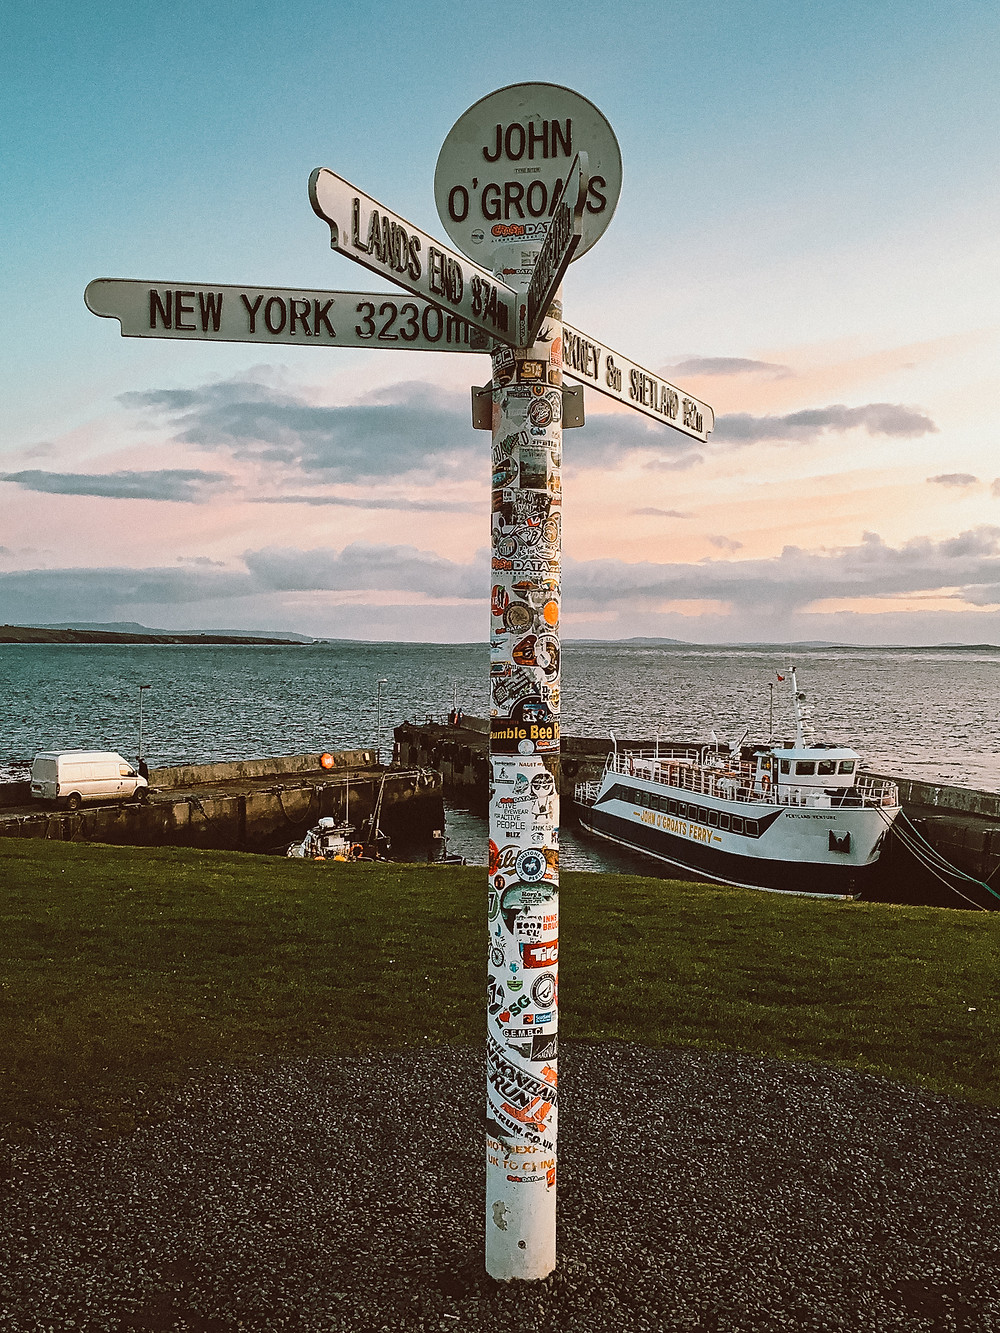 John O'Groats sign post at sunset with boat in background